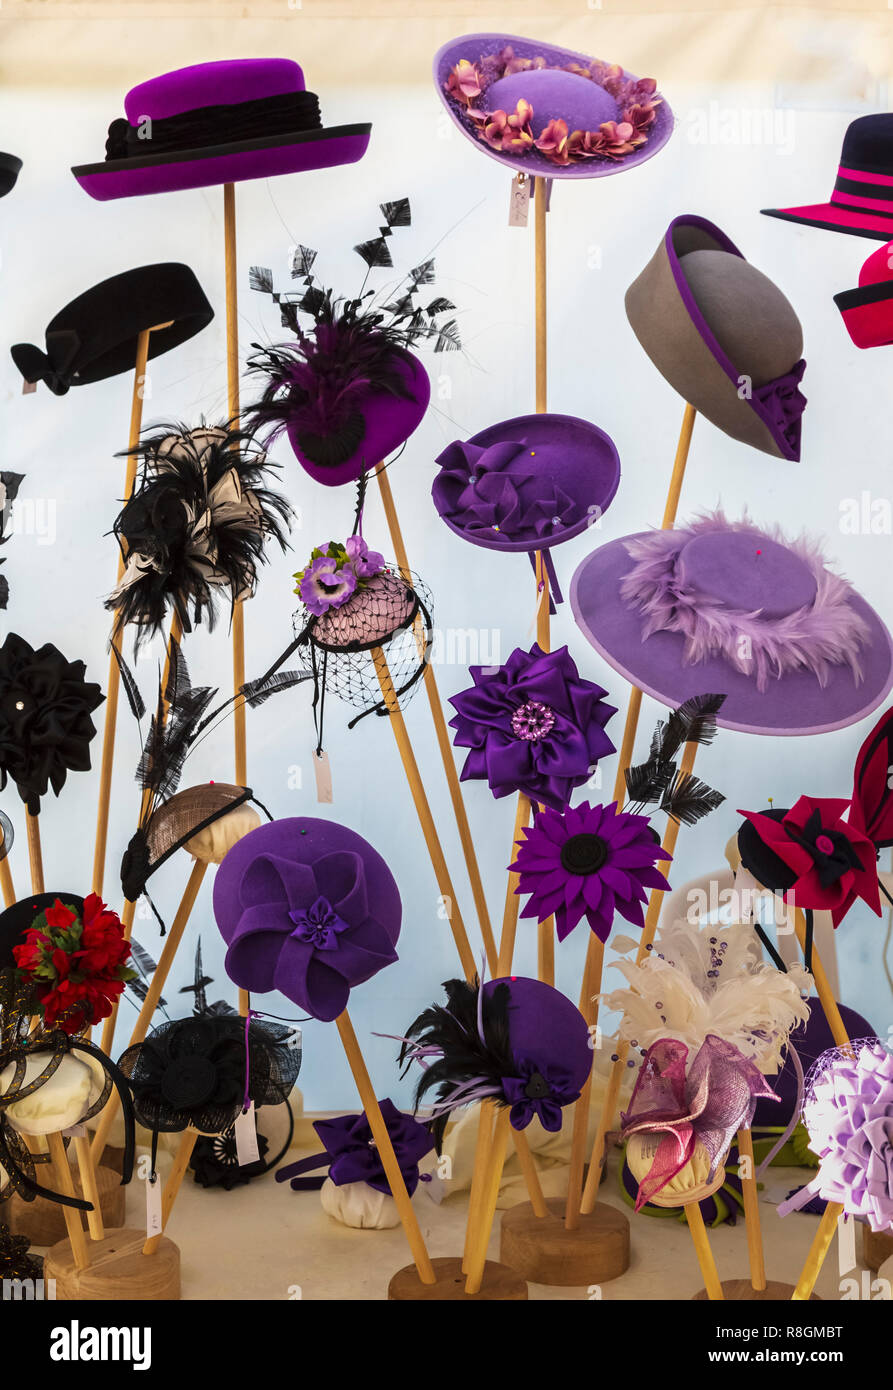 Colourful Display of Millinery at Craft Fair Held in a Marquee - Stock Image